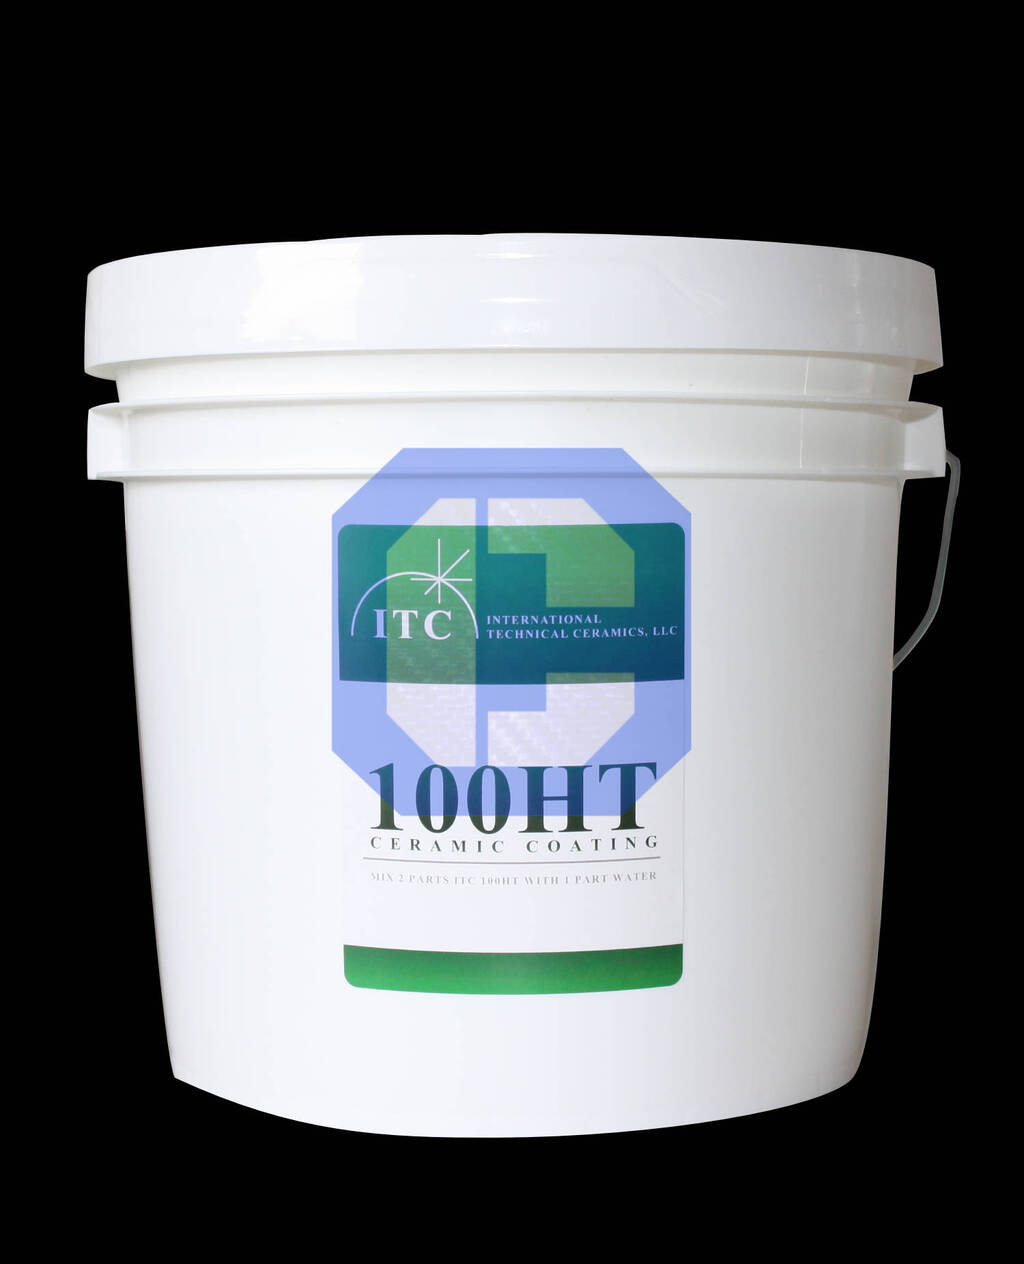 ITC-100 from CeraMaterials